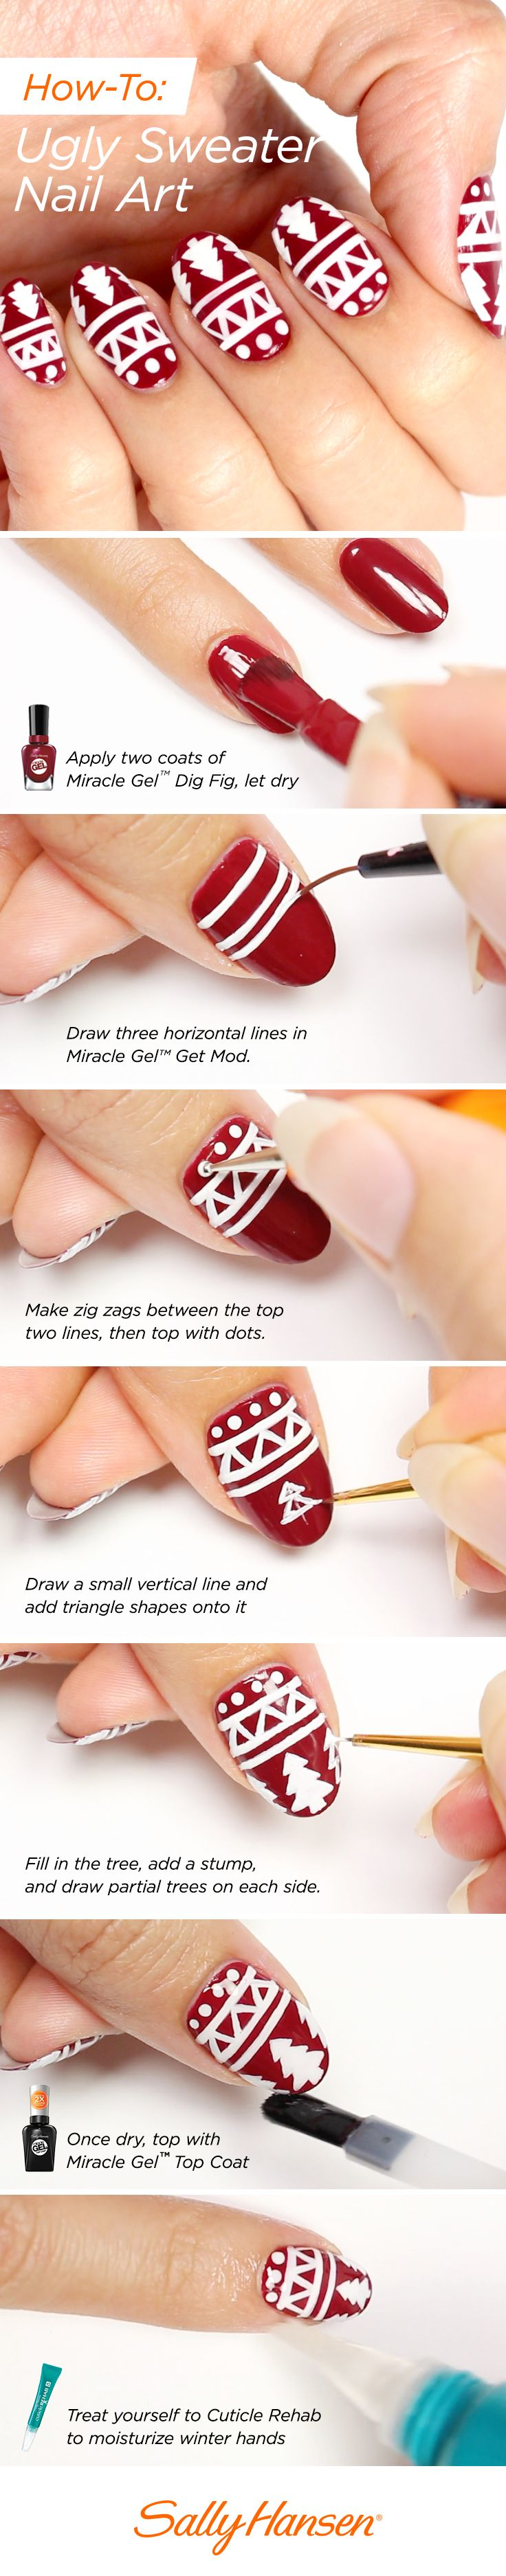 163 best omgel miracle gel images on pinterest nail nail gel follow hannah rox its easy steps to get cute ugly sweater inspired holiday nail art finish with miracle gel top coat for up to 14 days of chip resistant solutioingenieria